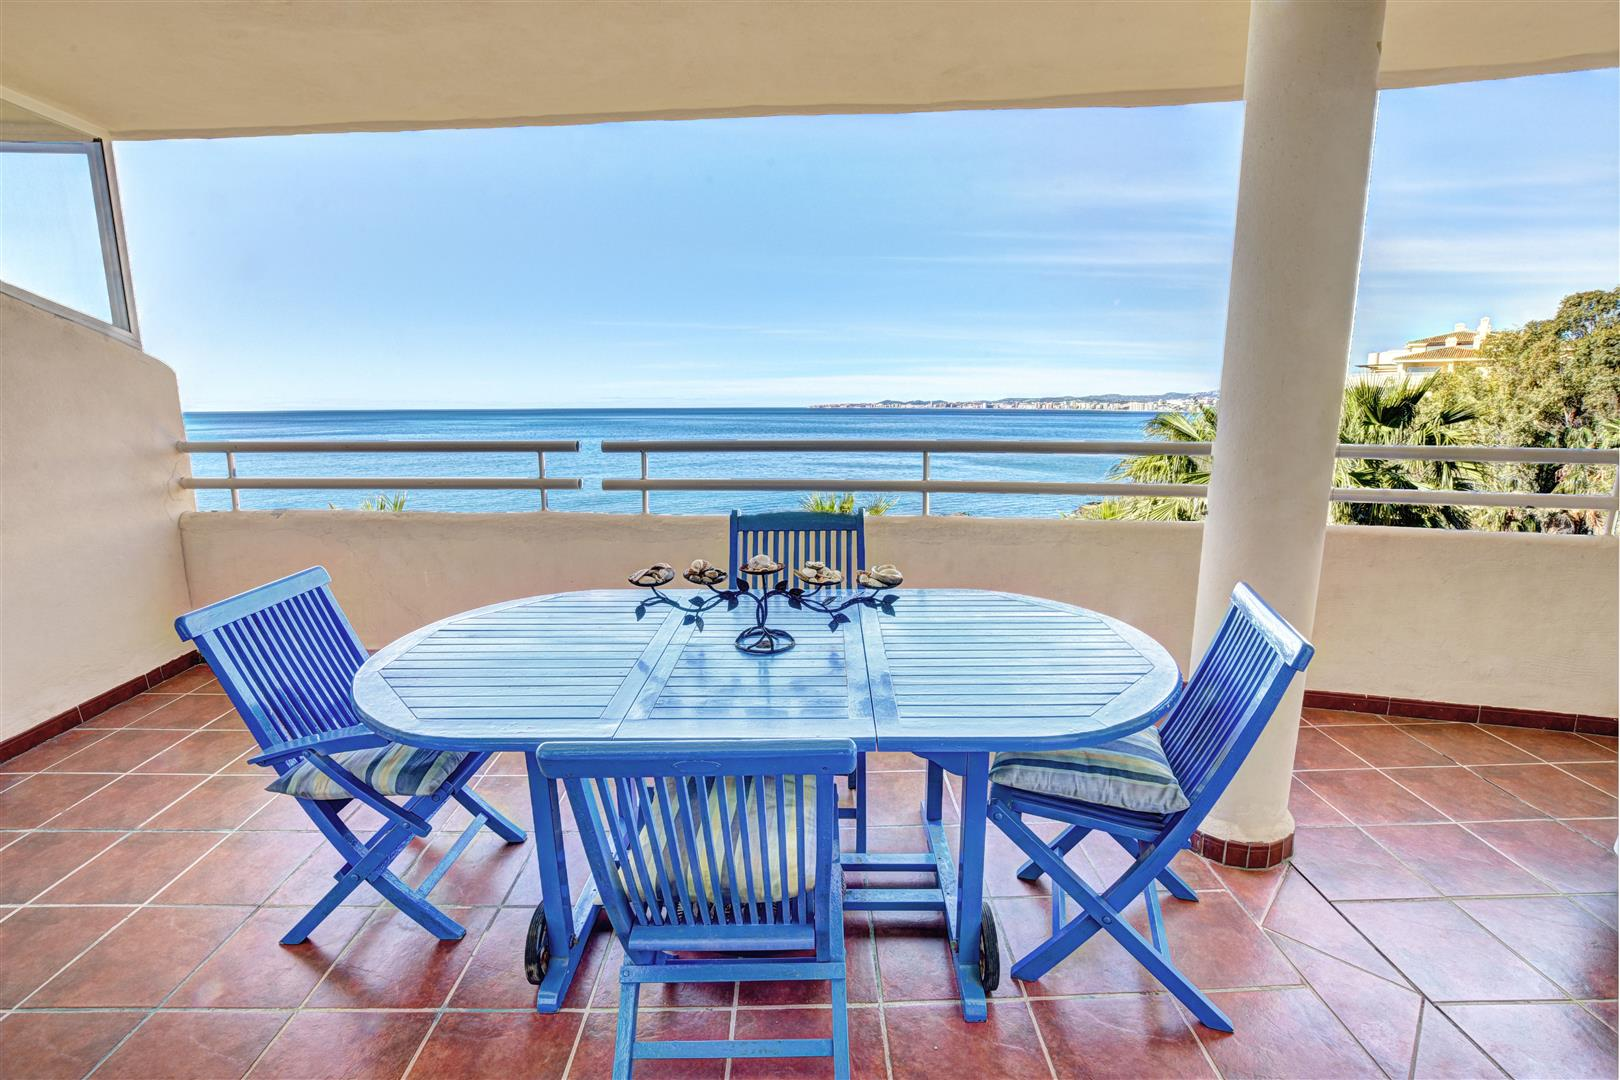 2 bed apartment for sale in Benalmadena Costa Costaquebrada terrace2